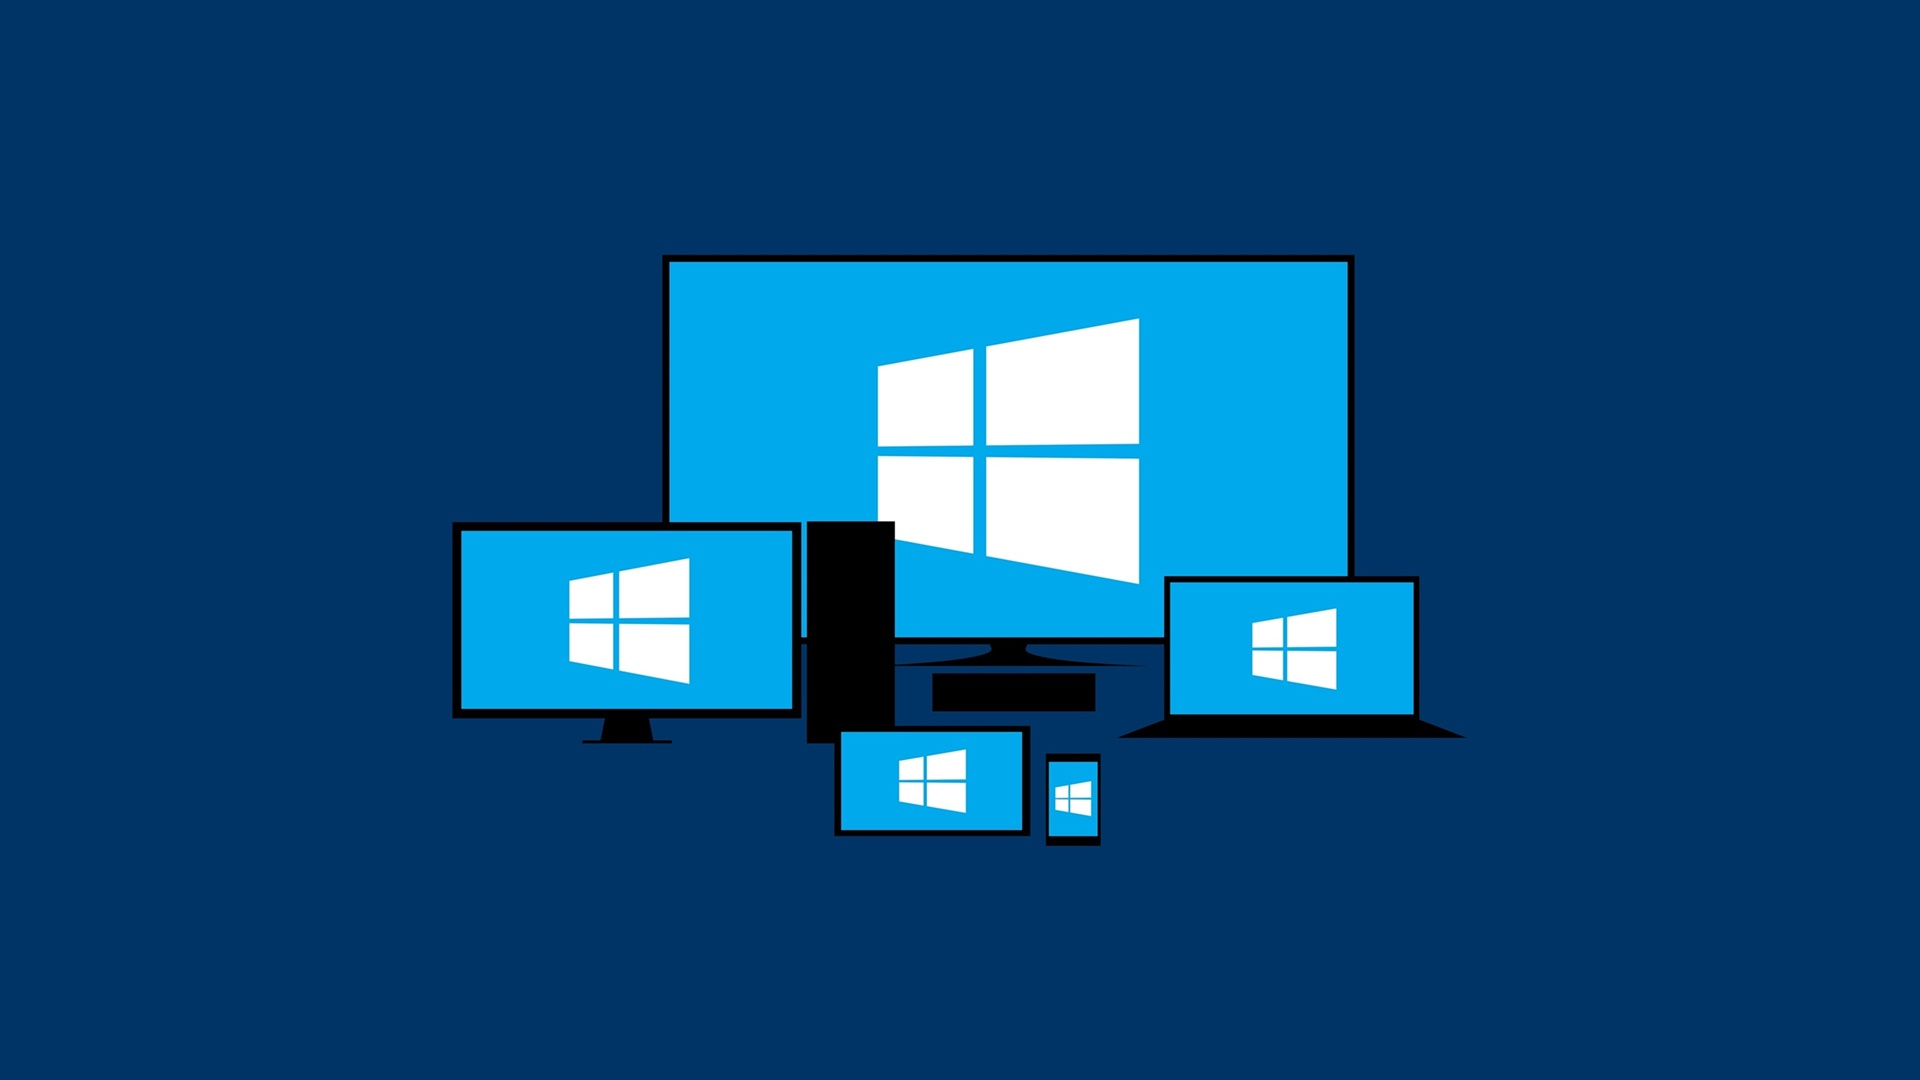 Windows 10 Logo Wallpaper New Windows Logos Windows 1920x1080